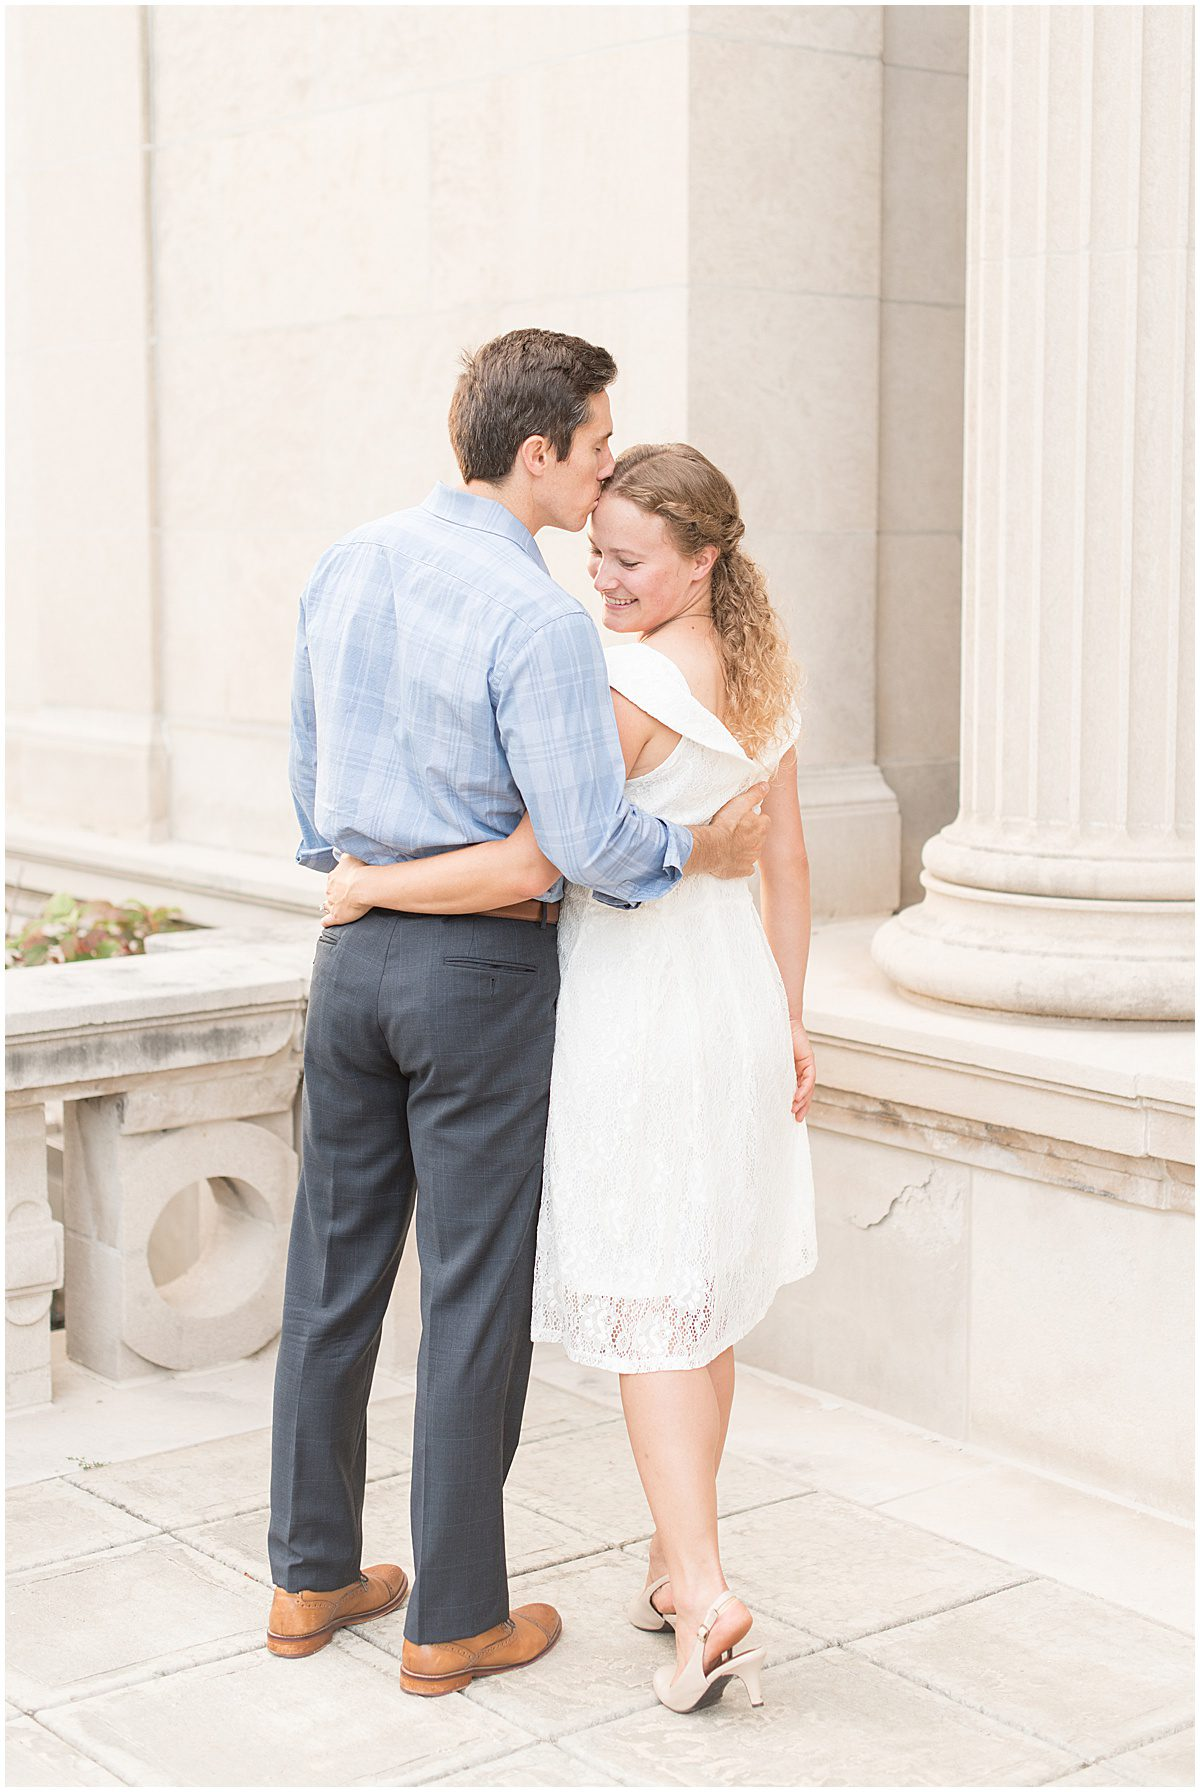 Andrew Mahoney and Julie Feldpausch opted for summer engagement photos in downtown Lafayette, Indiana